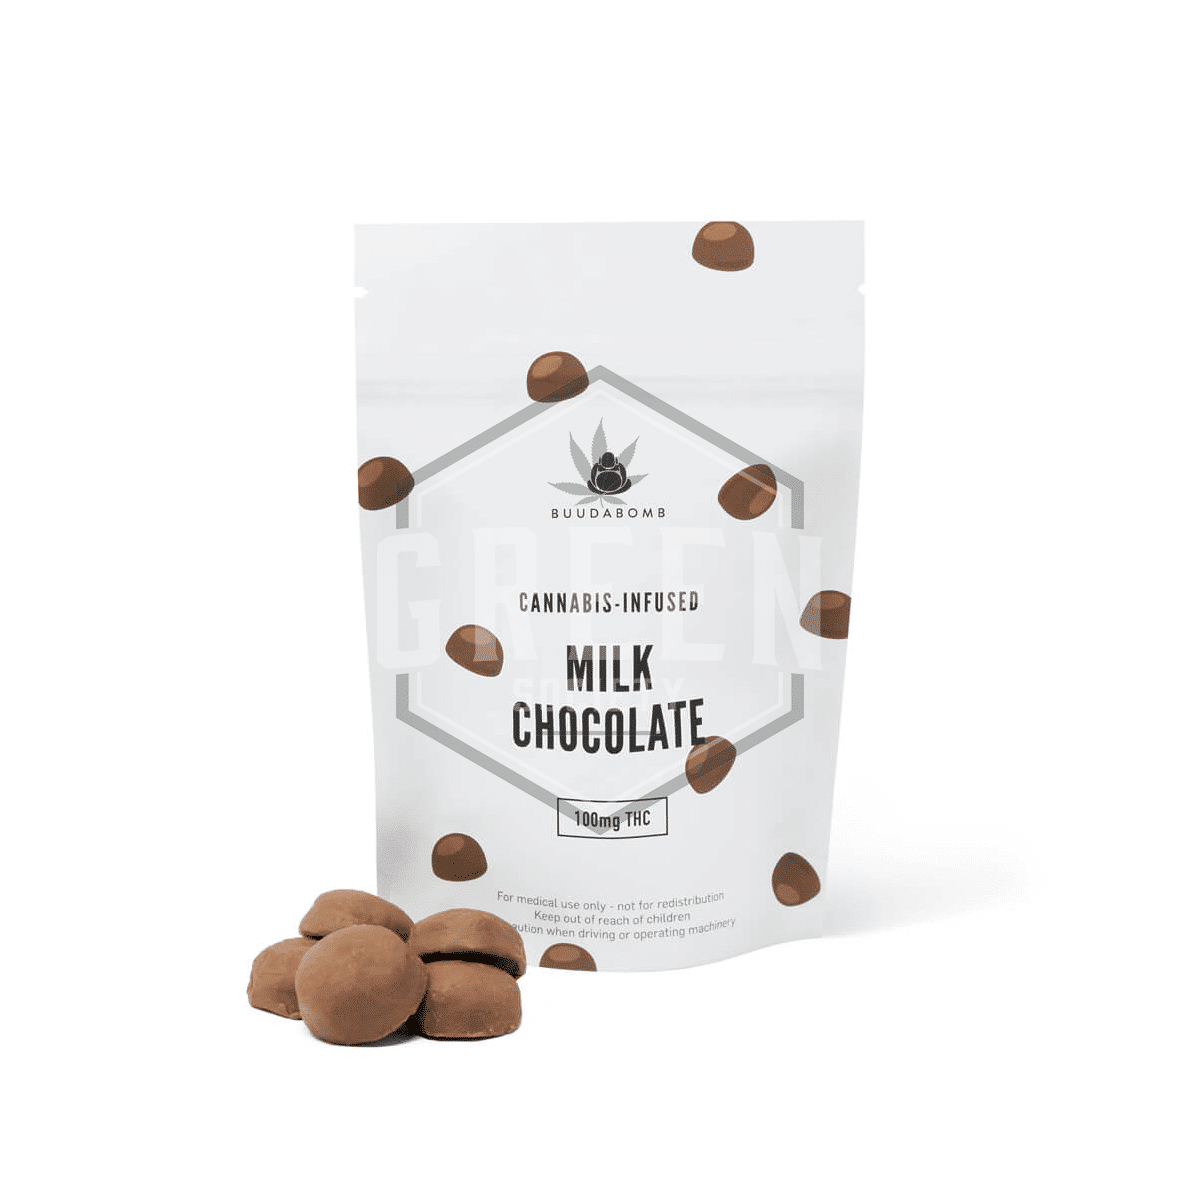 Milk Chocolates by Buuda Bomb by Green Society - Image © 2018 Green Society. All Rights Reserved.